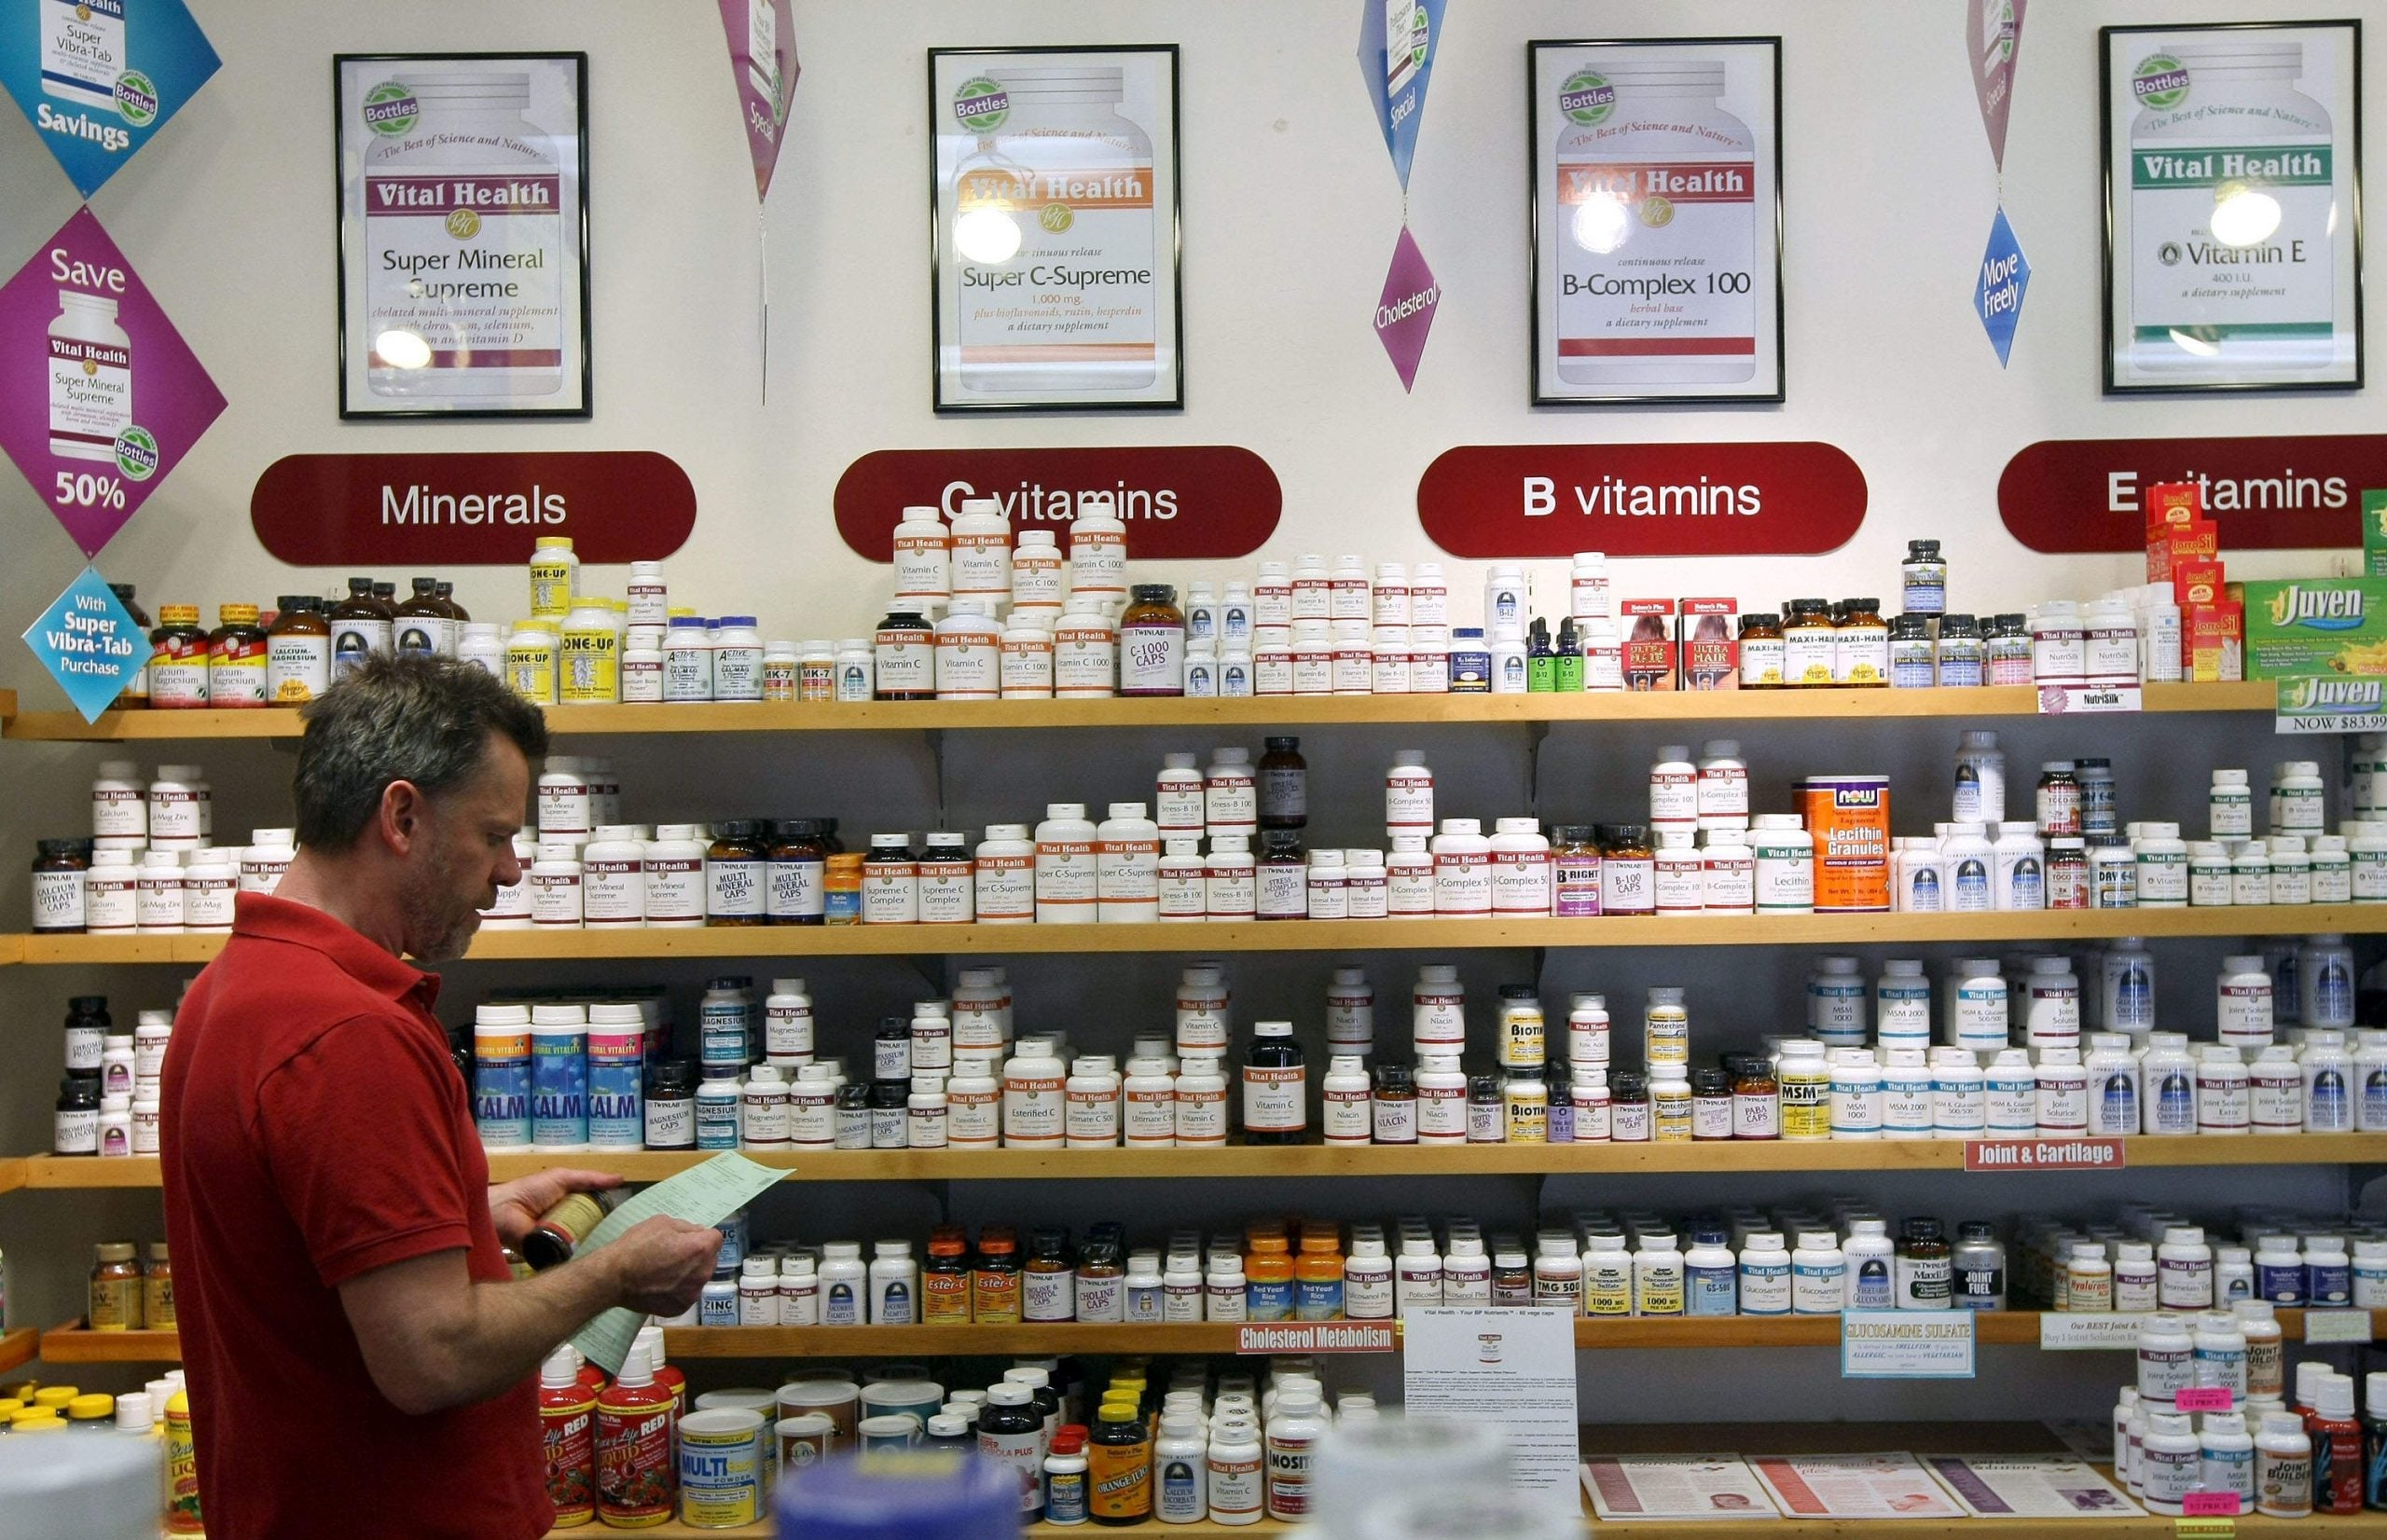 The Vitamin Paradox: why both health and illness boost our misplaced trust in supplements